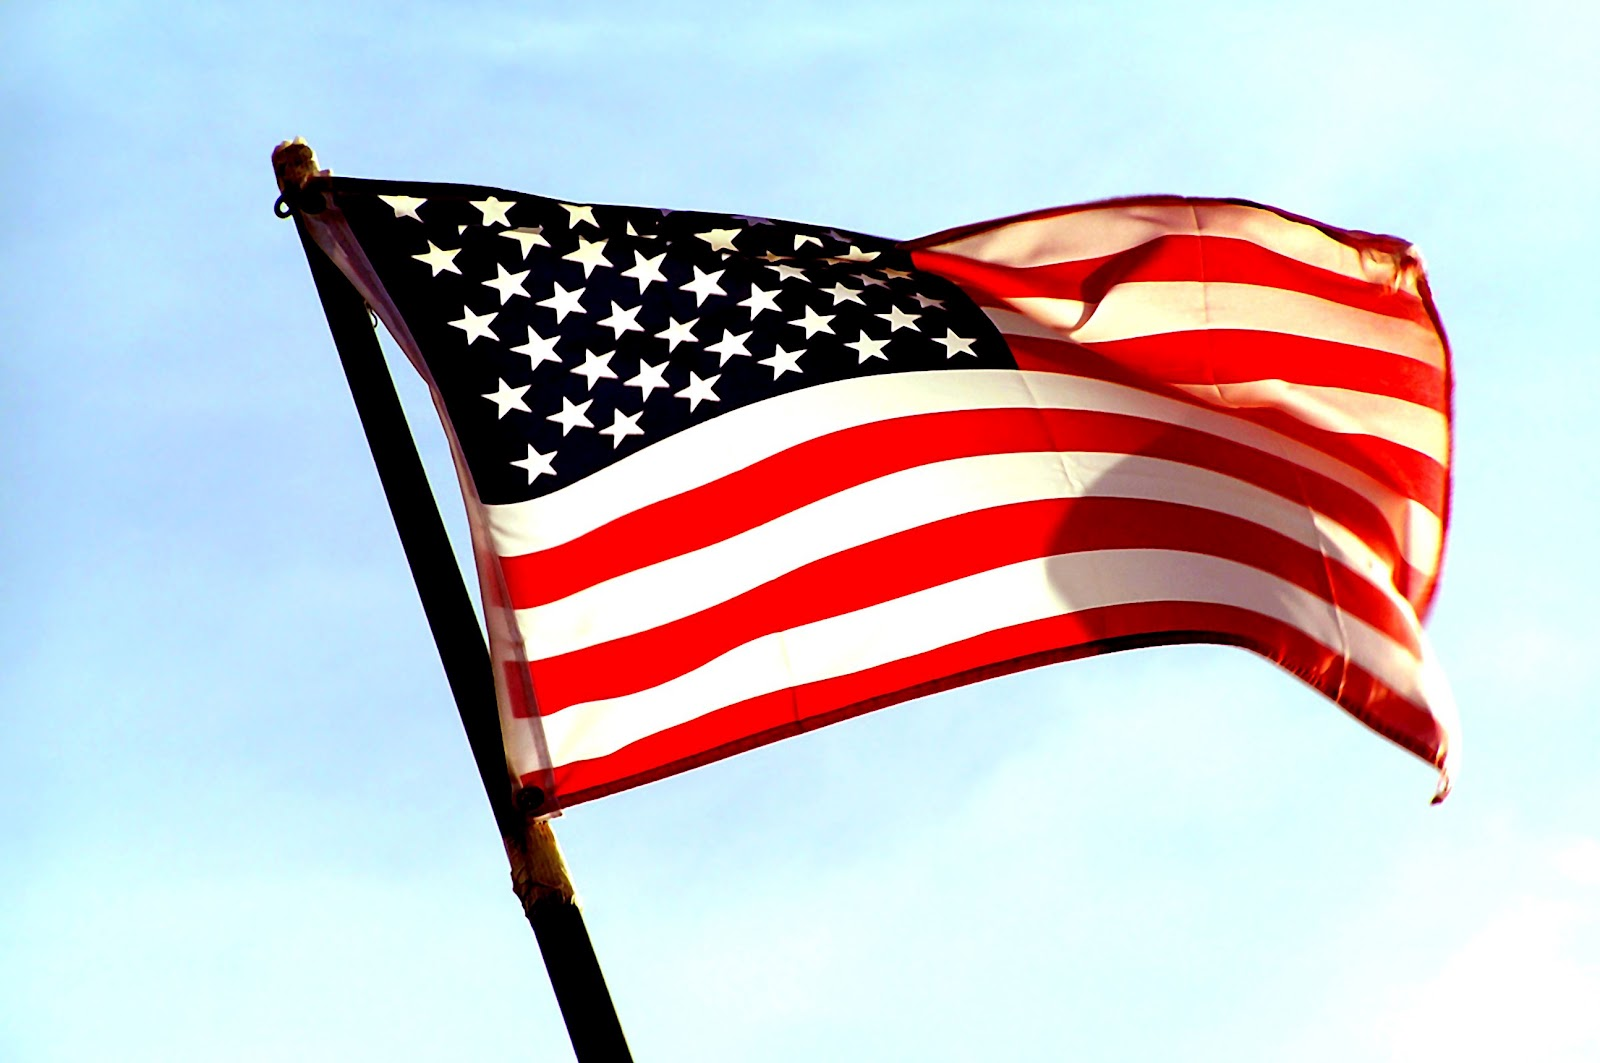 USA Flag Wallpapers HD USA Flag Wallpaper Full HD 1600x1063